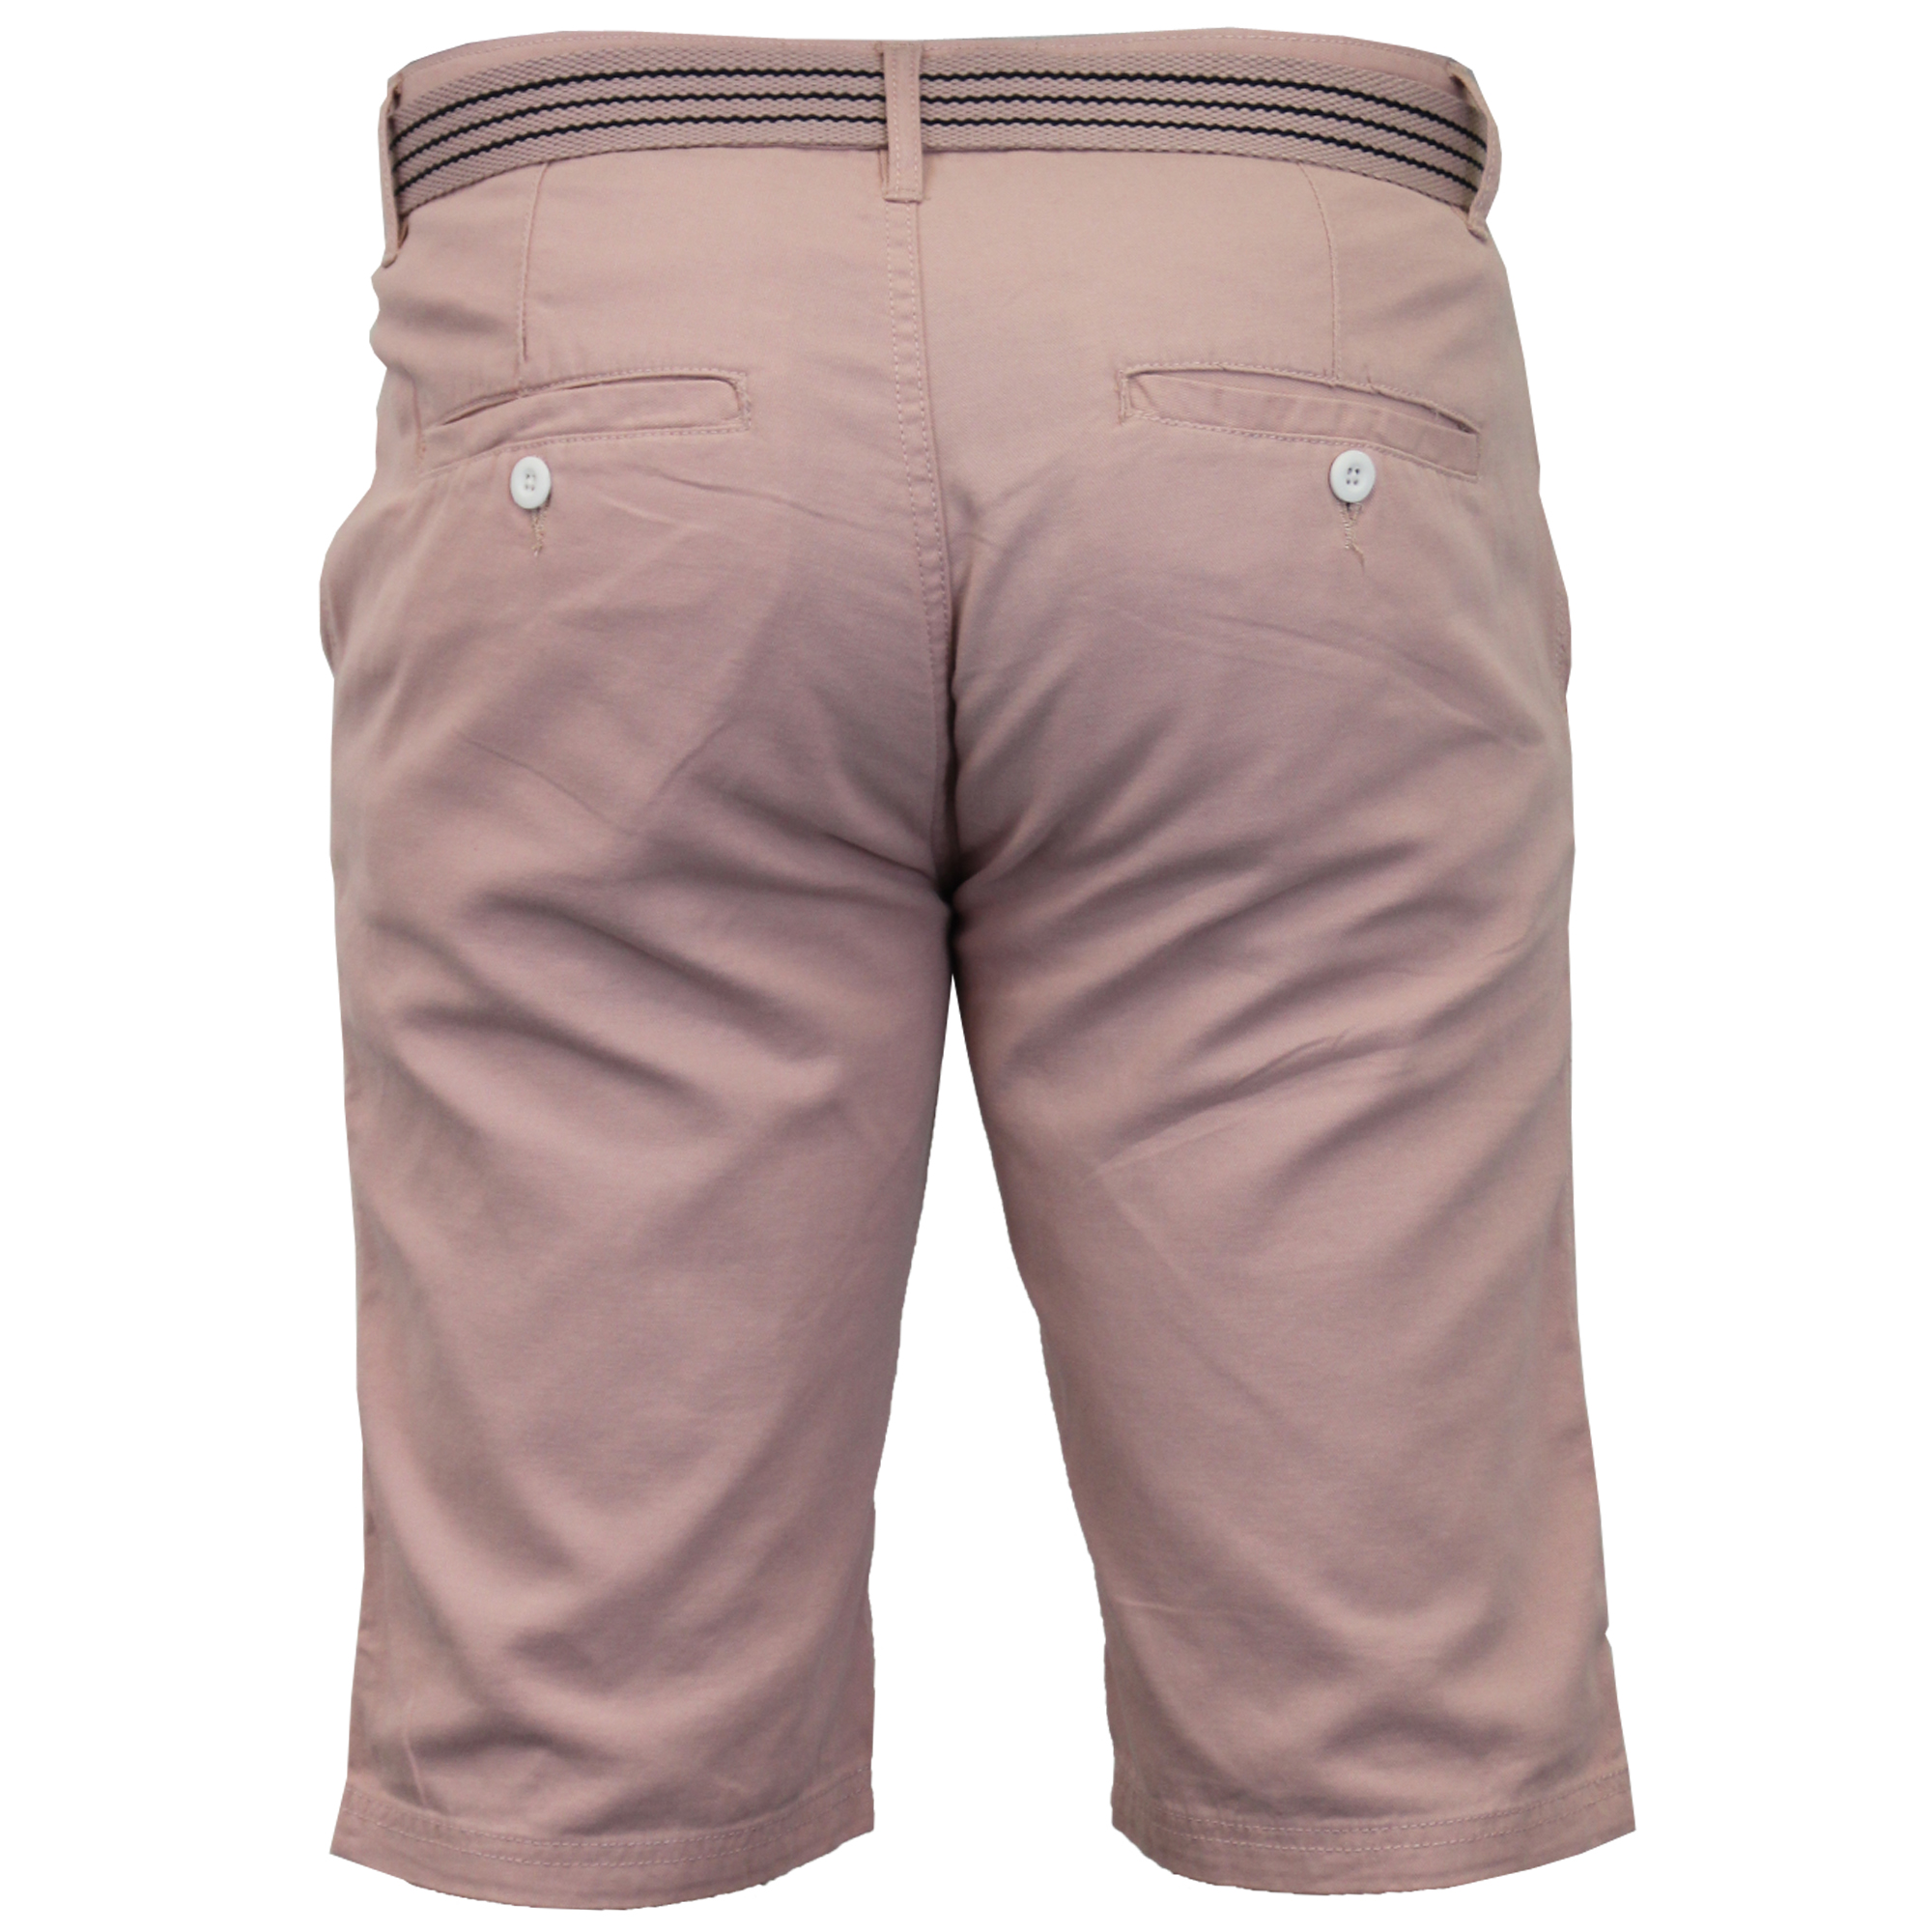 Mens-Chino-Shorts-Threadbare-Cotton-Oxford-Belted-Loyalty-amp-Faith-Seven-Series thumbnail 8